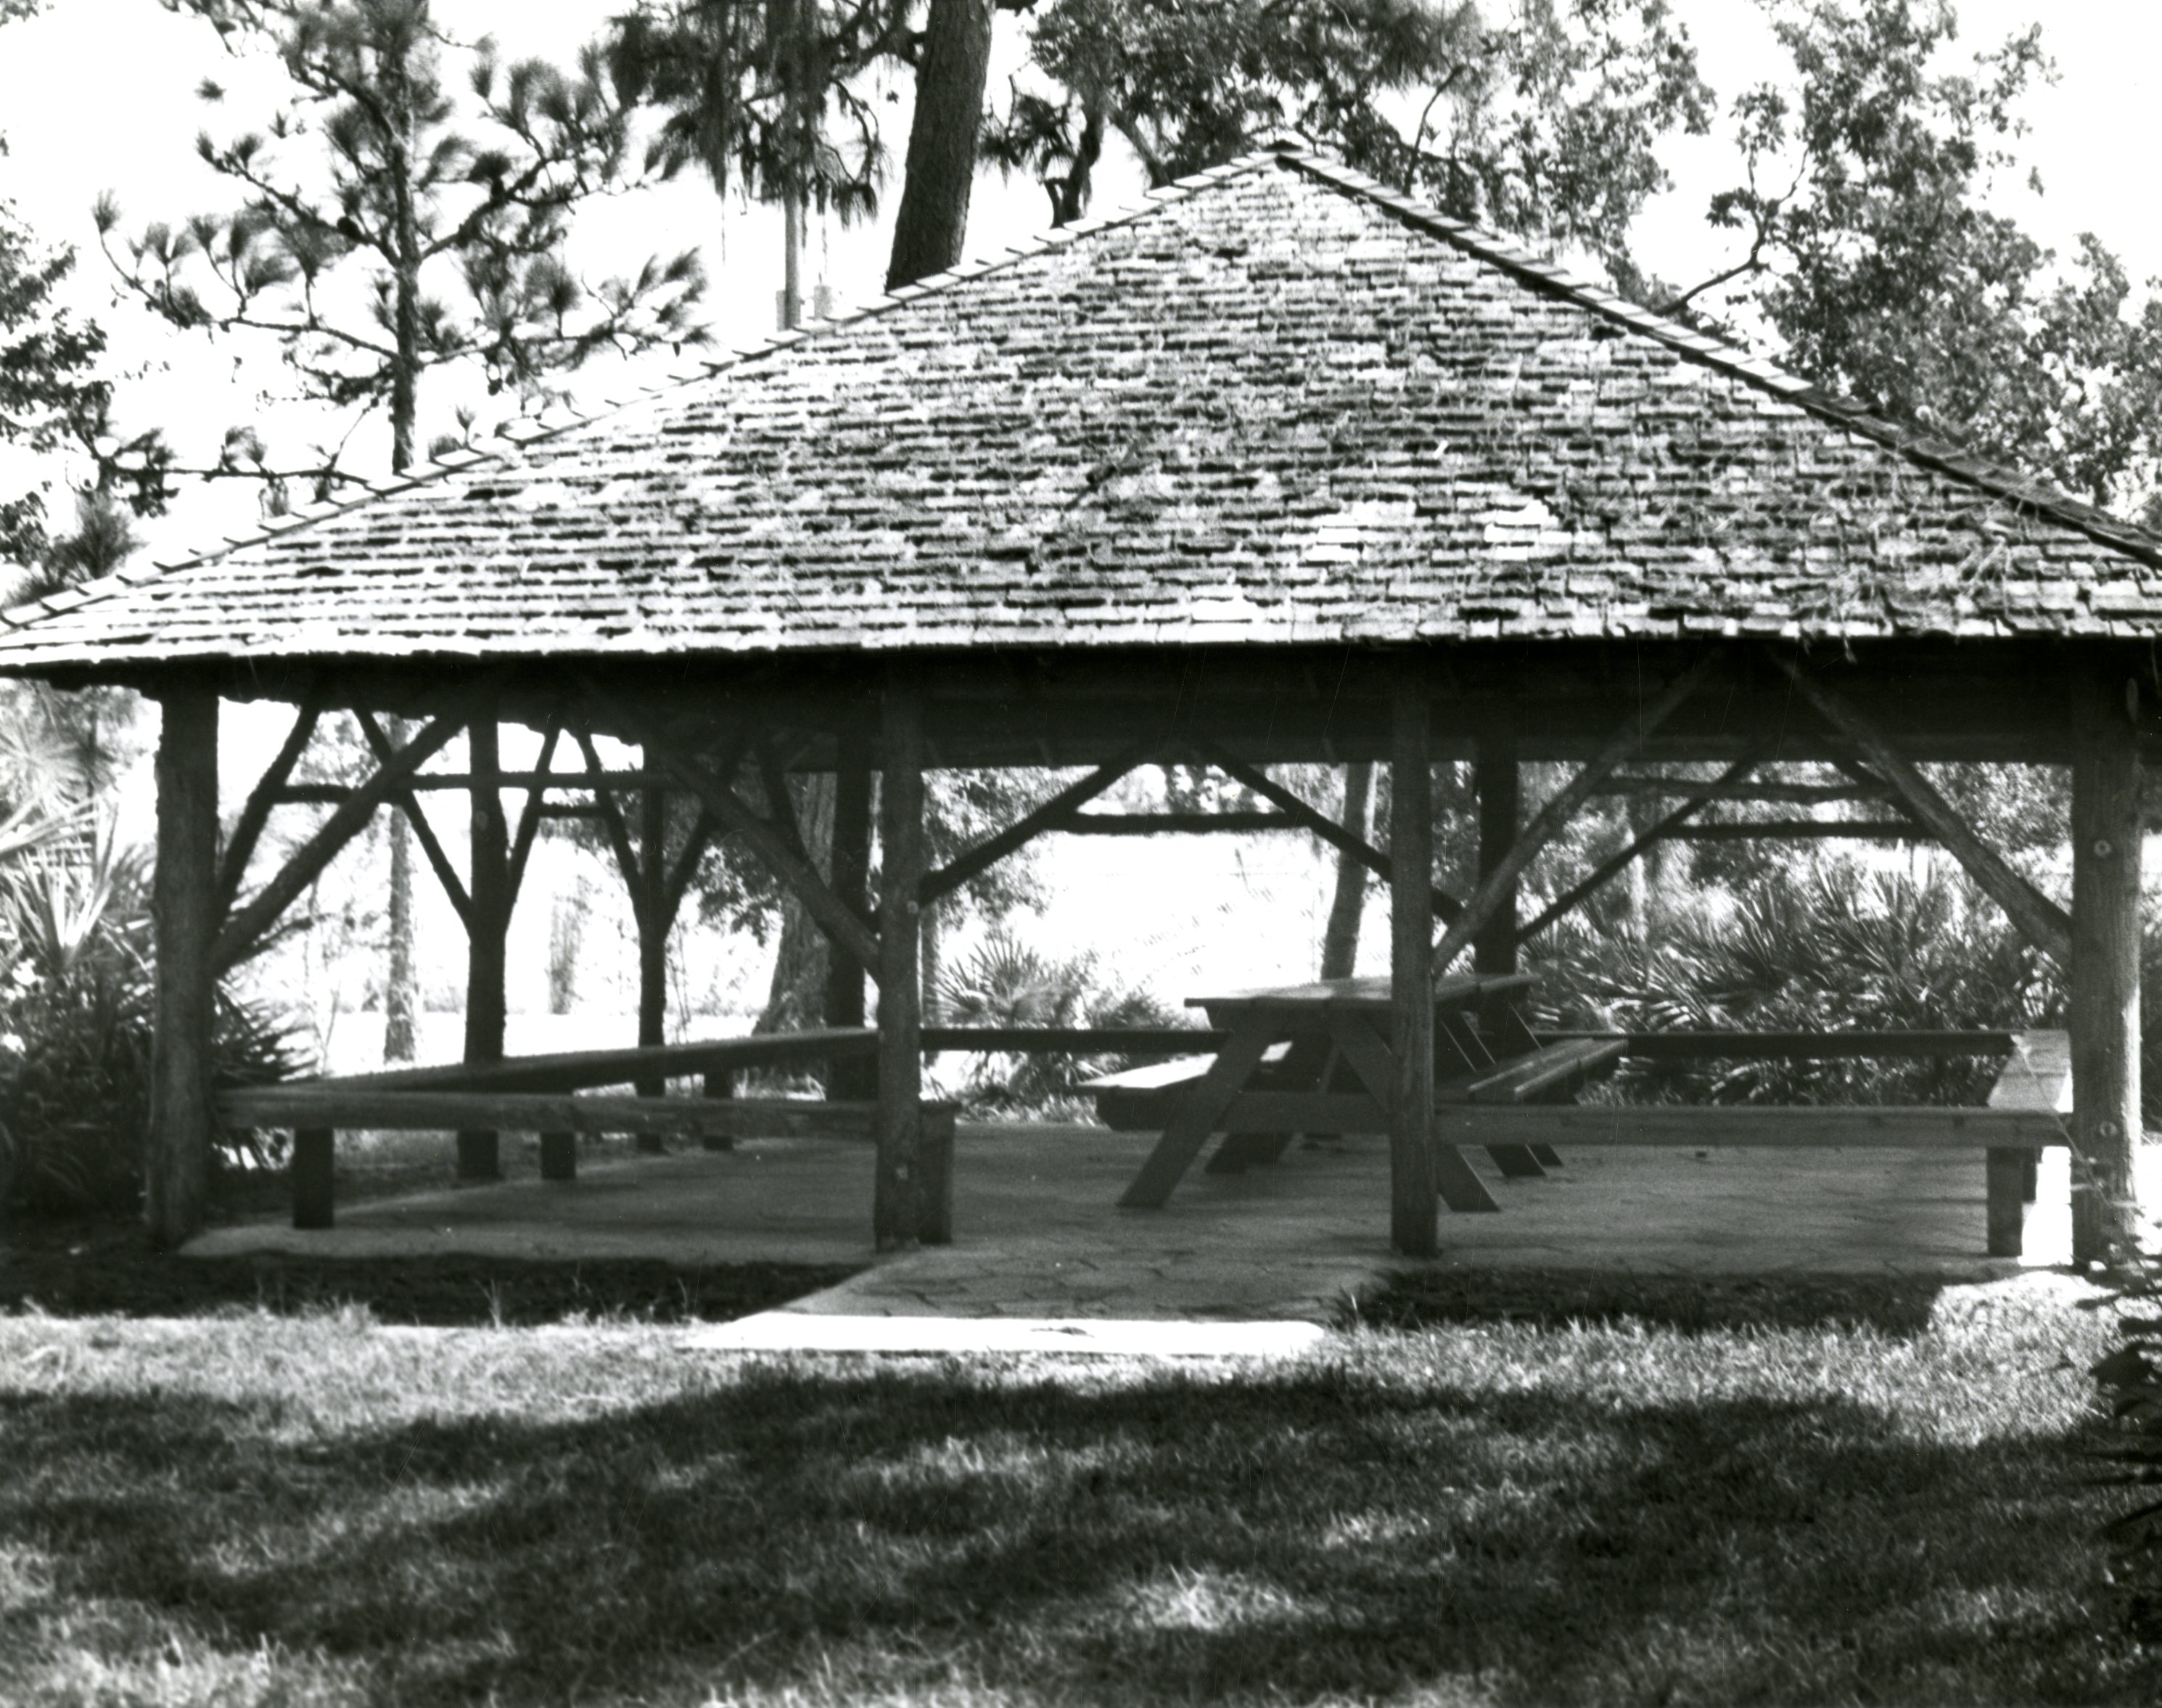 Safford Pavilion at Heritage Village, Largo, Florida, 1982.